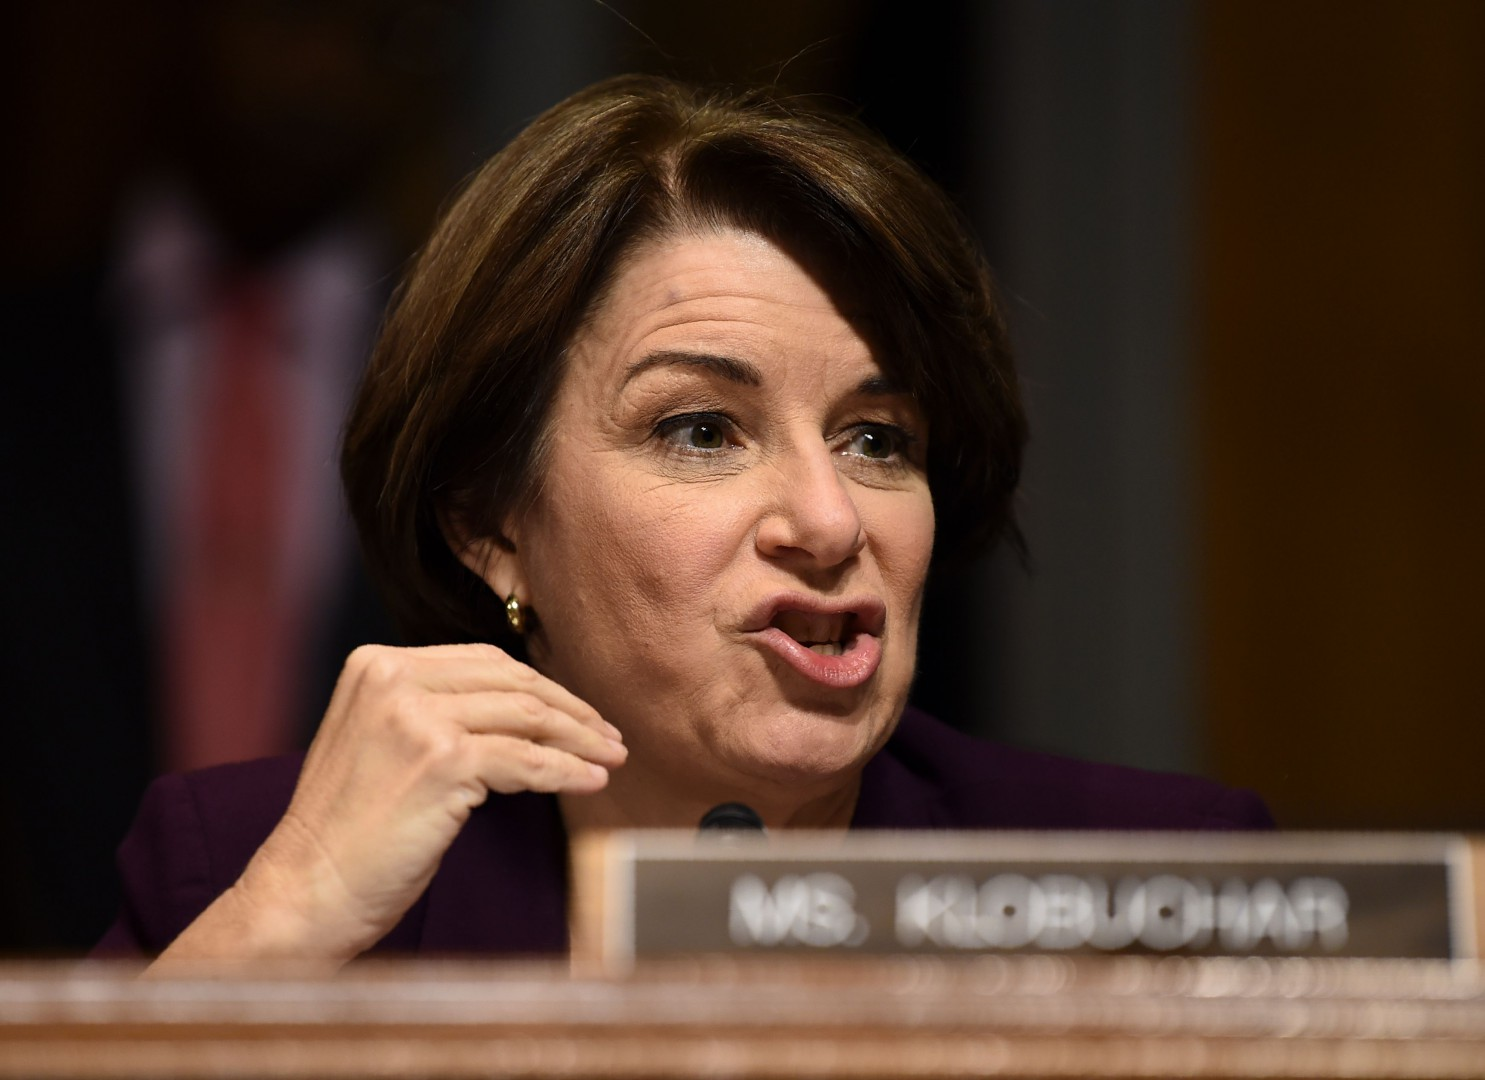 Senate Judiciary Committee member Senator Amy Klobuchar (D-MN) speaks during a markup hearing on Capitol Hill in Washington, DC on September 28, 2018, on the nomination of Brett M. Kavanaugh to be an associate justice of the Supreme Court of the United States. - Kavanaugh's contentious Supreme Court nomination will be put to an initial vote Friday, the day after a dramatic Senate hearing saw the judge furiously fight back against sexual assault allegations recounted in harrowing detail by his accuser. (Photo by Brendan SMIALOWSKI / AFP)